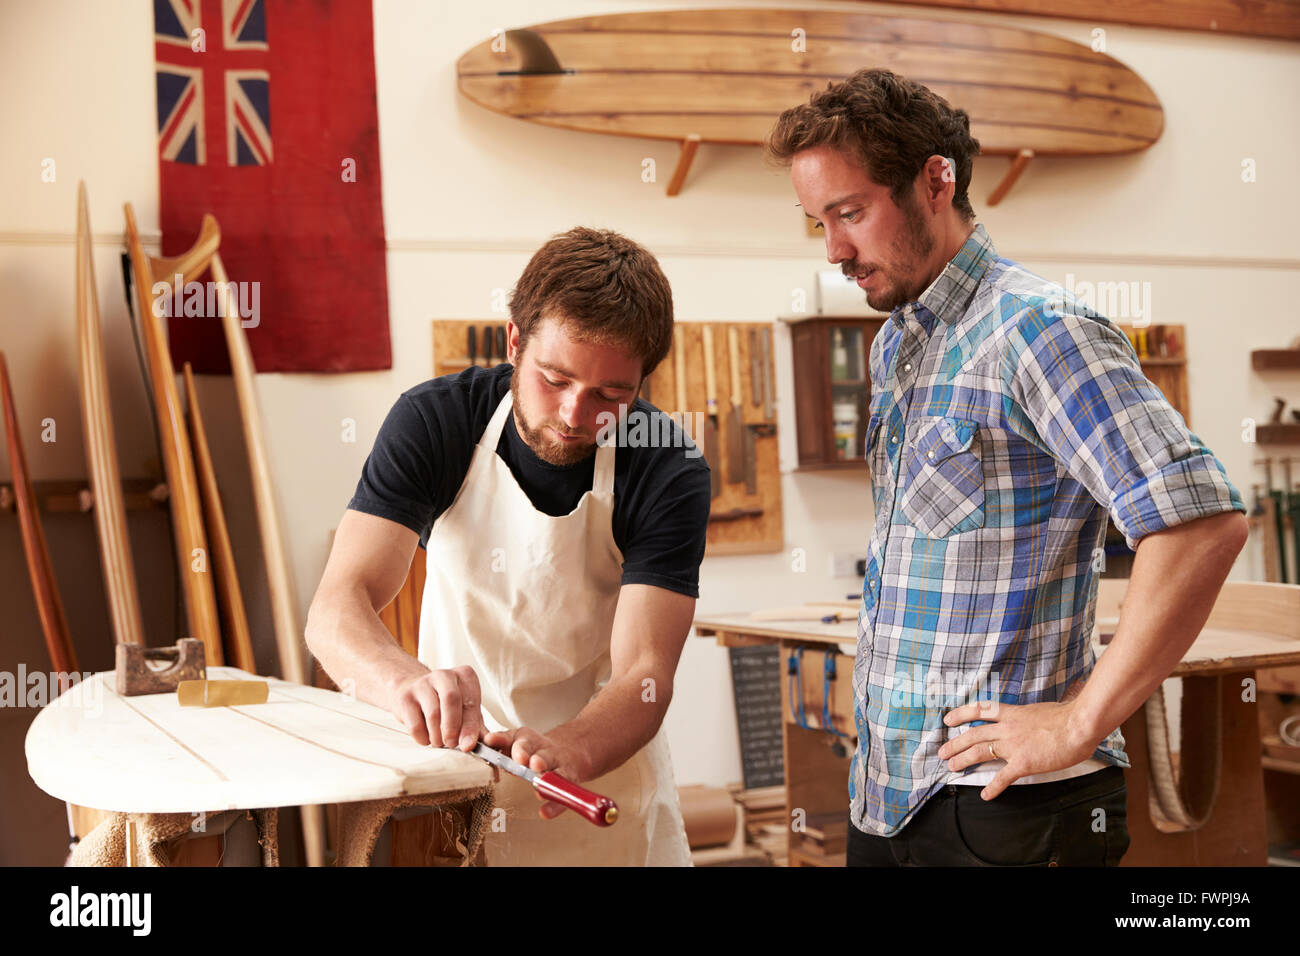 Carpenter With Apprentice Making Bespoke Wooden Surfboard - Stock Image